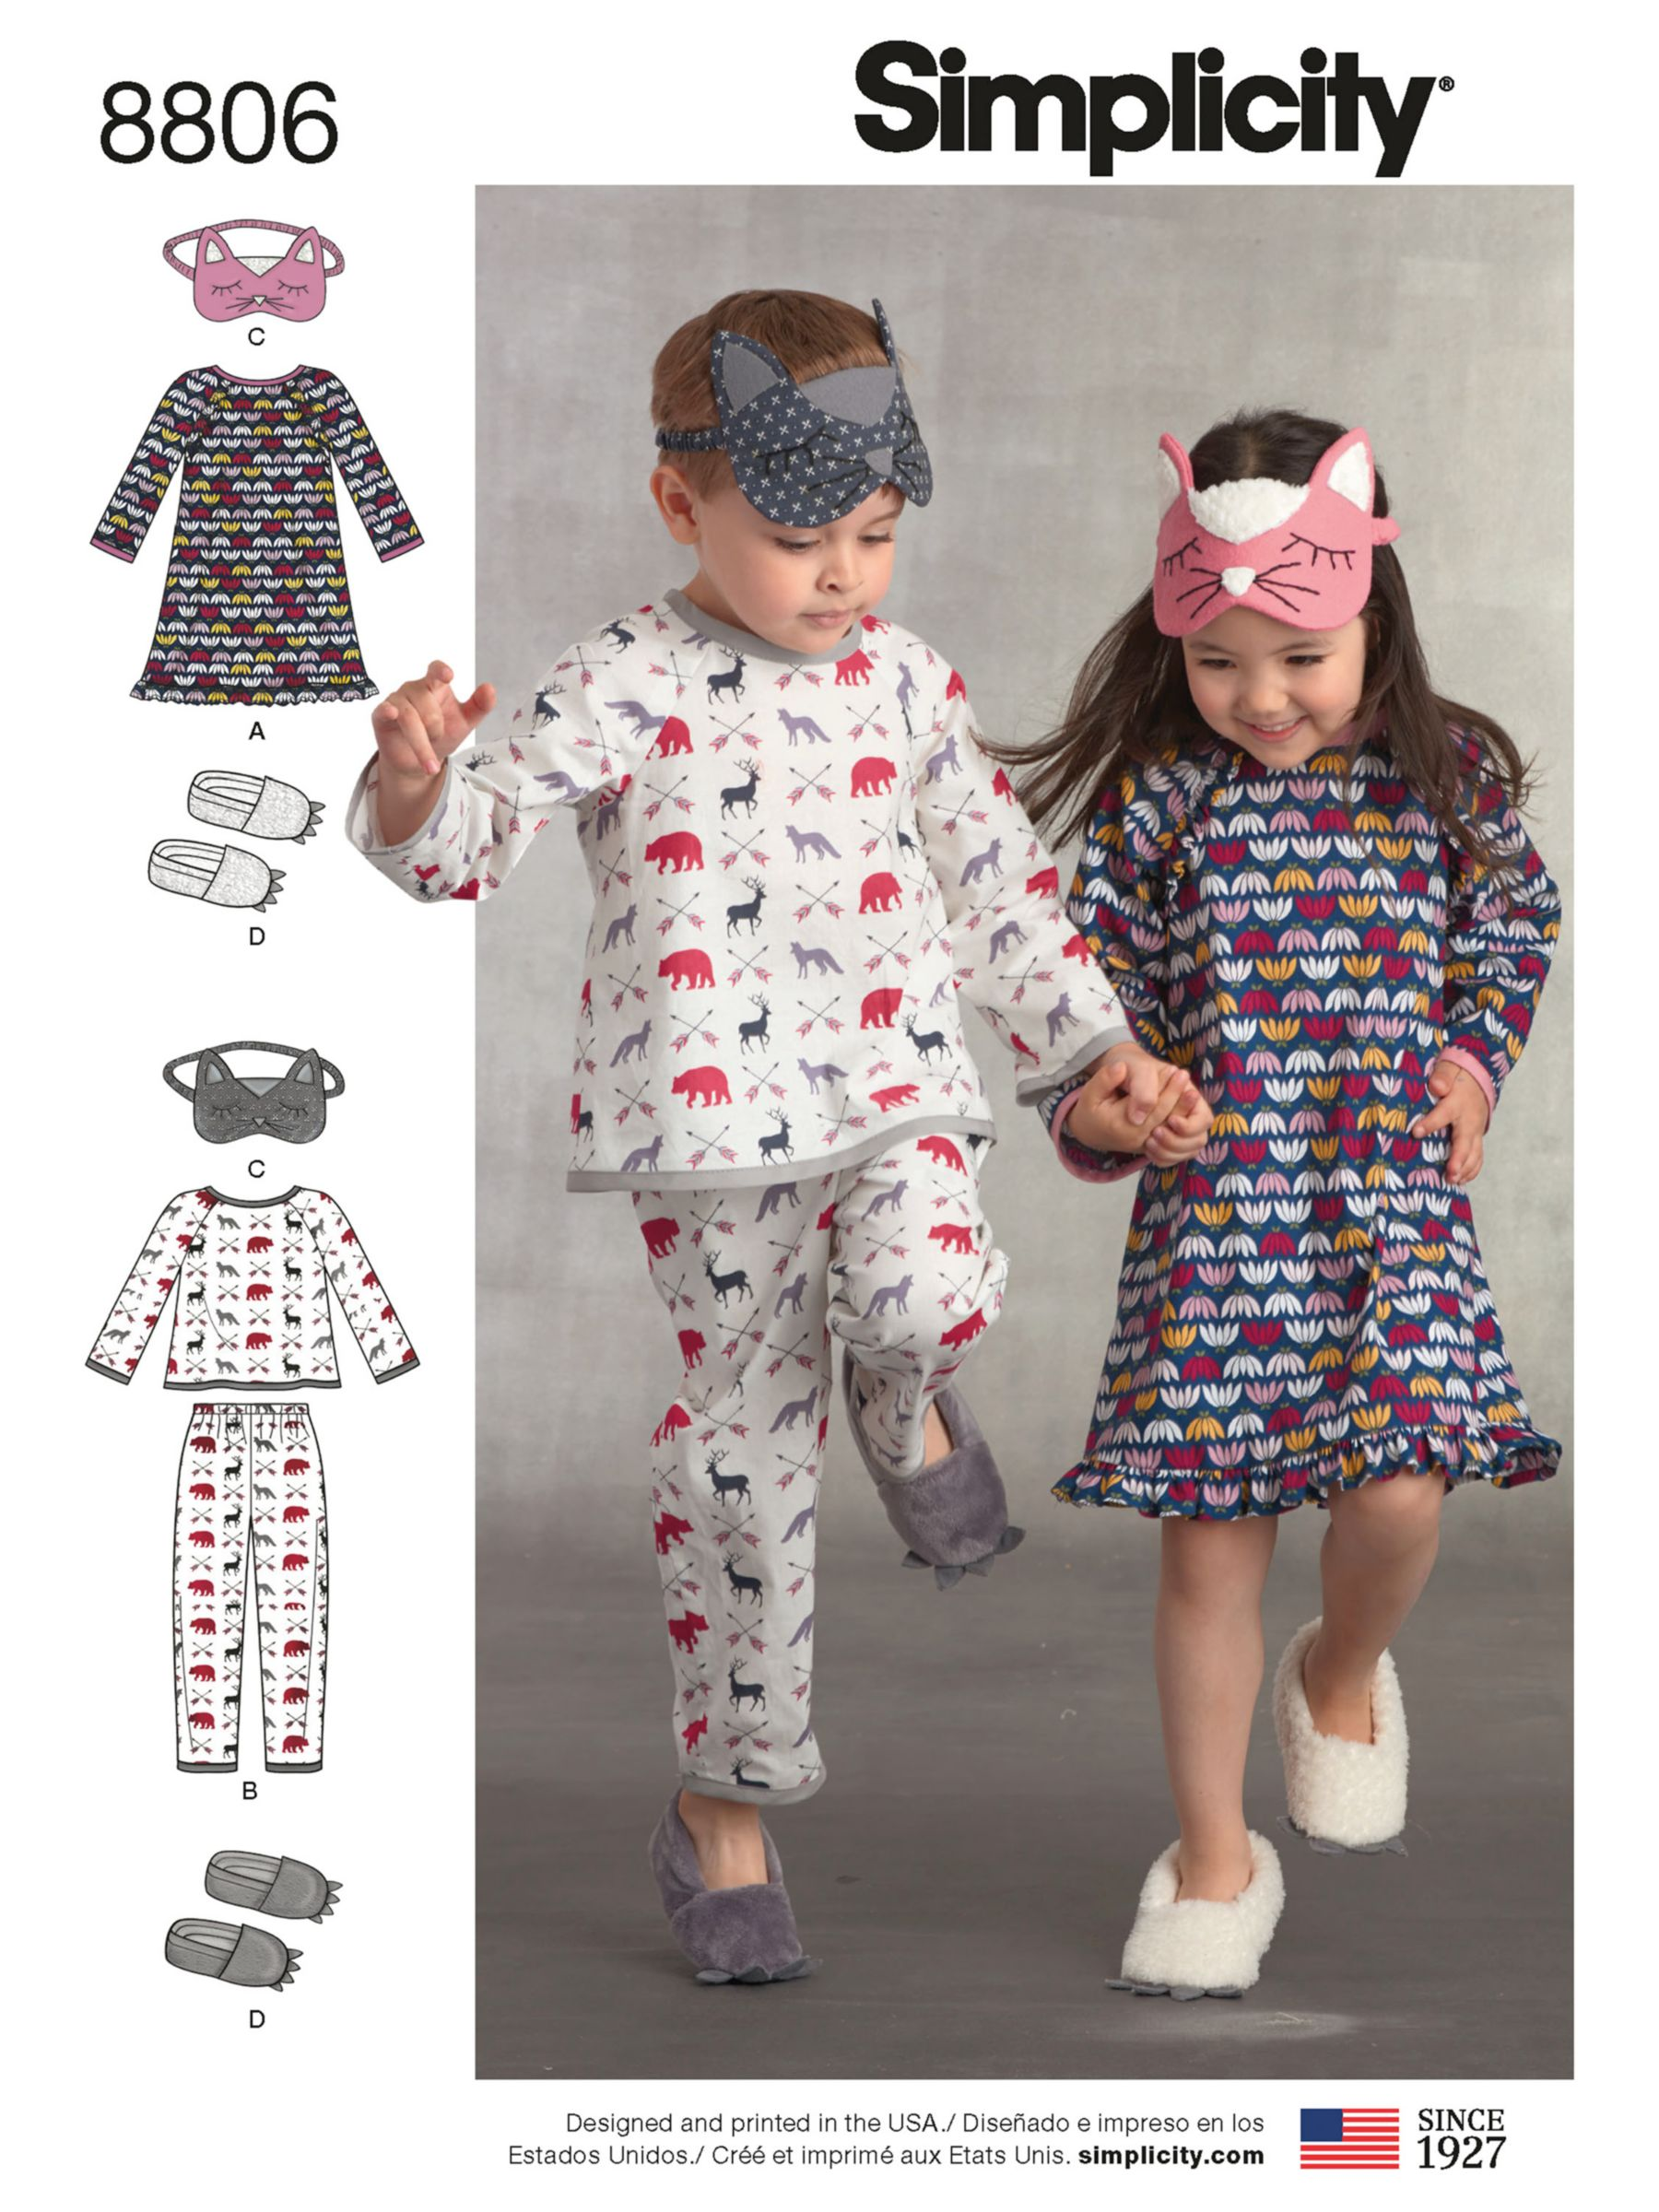 Simplicity Simplicity Children's Pyjama Set Sewing Pattern, 8806